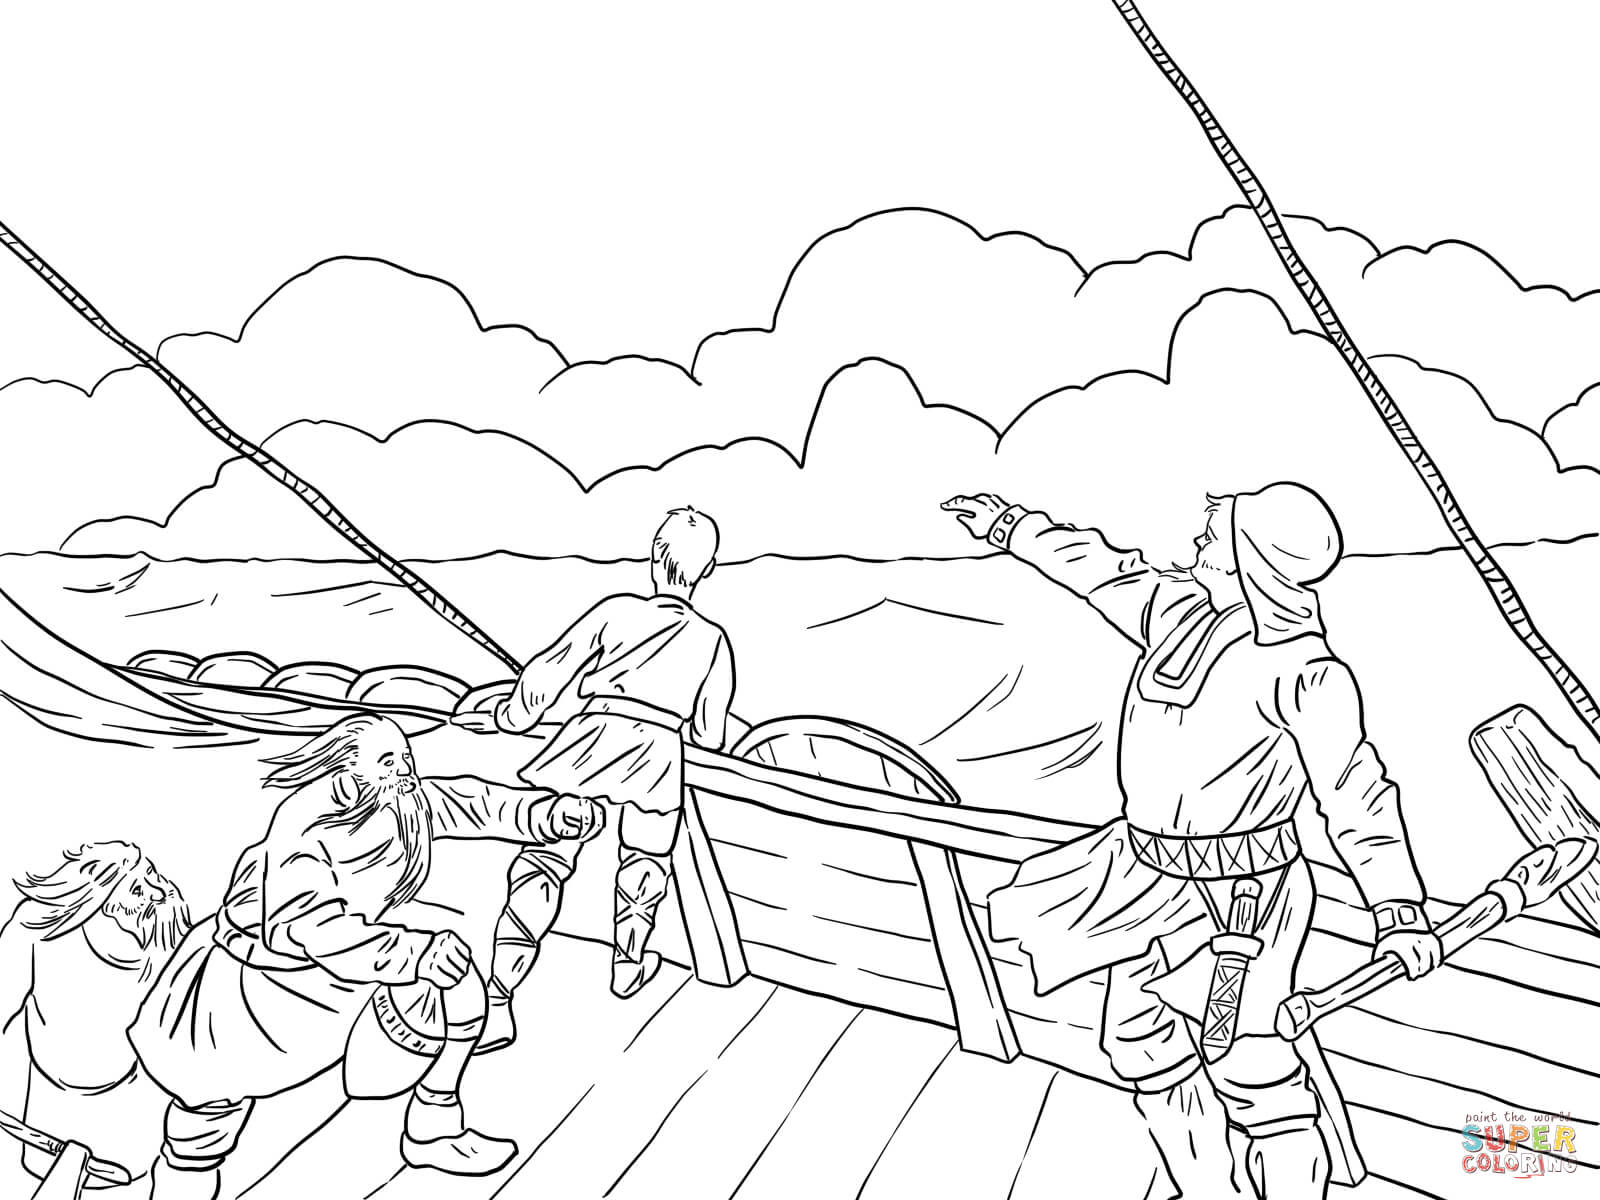 Leif Ericson Discovers North America Coloring Page